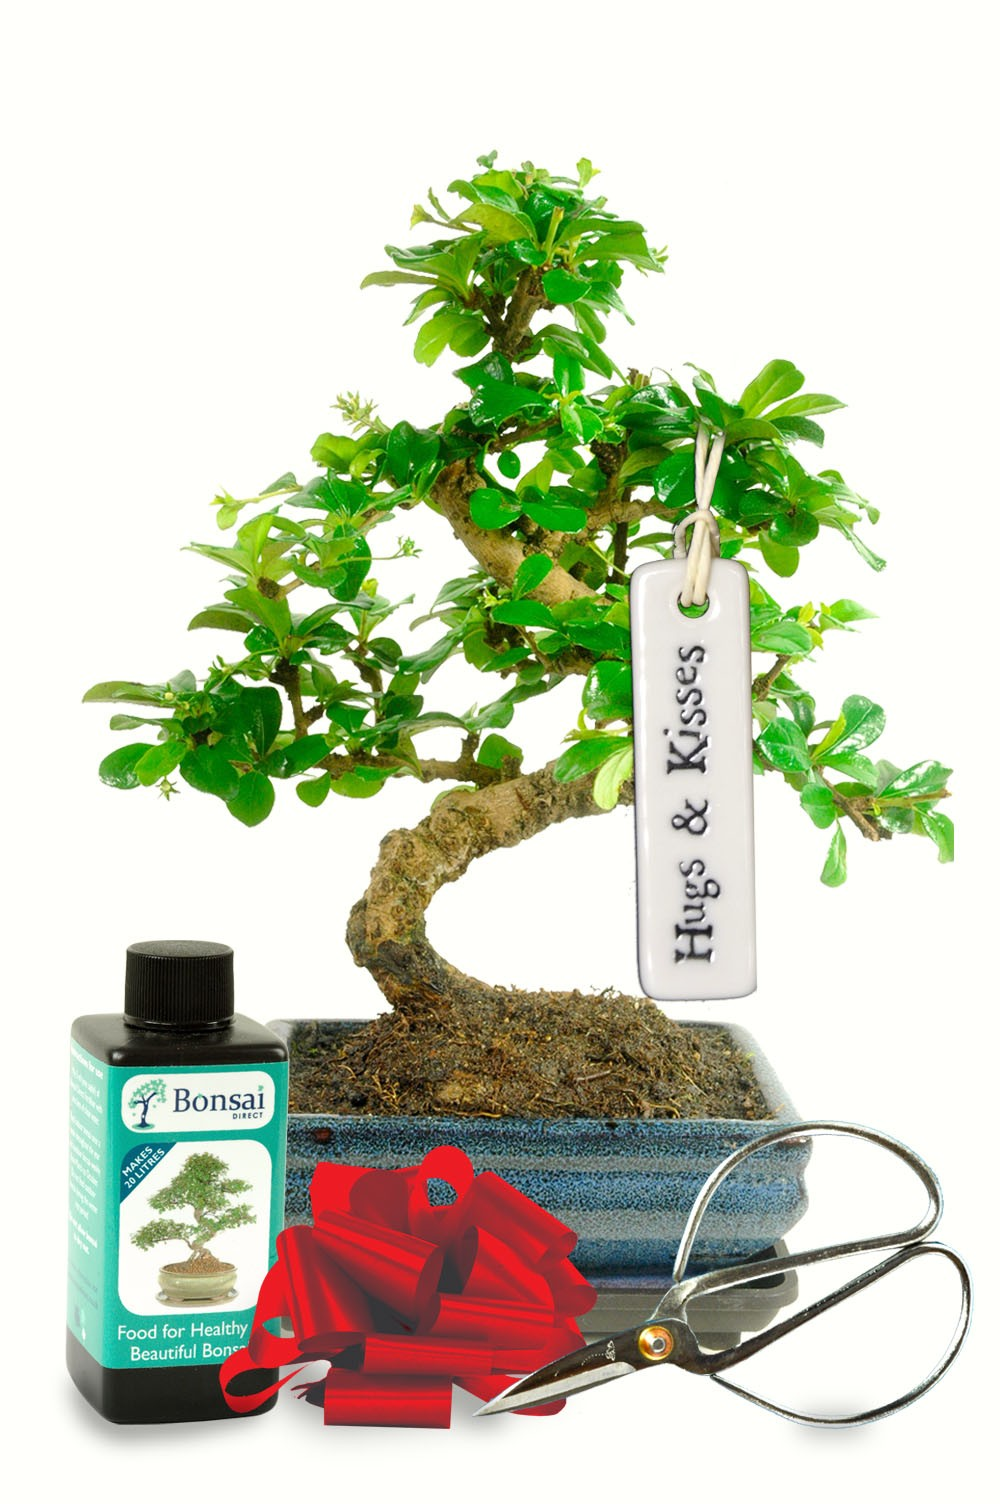 Bonsai Trees As a Gift - Bonsai trees are a perfect gift for any loved one